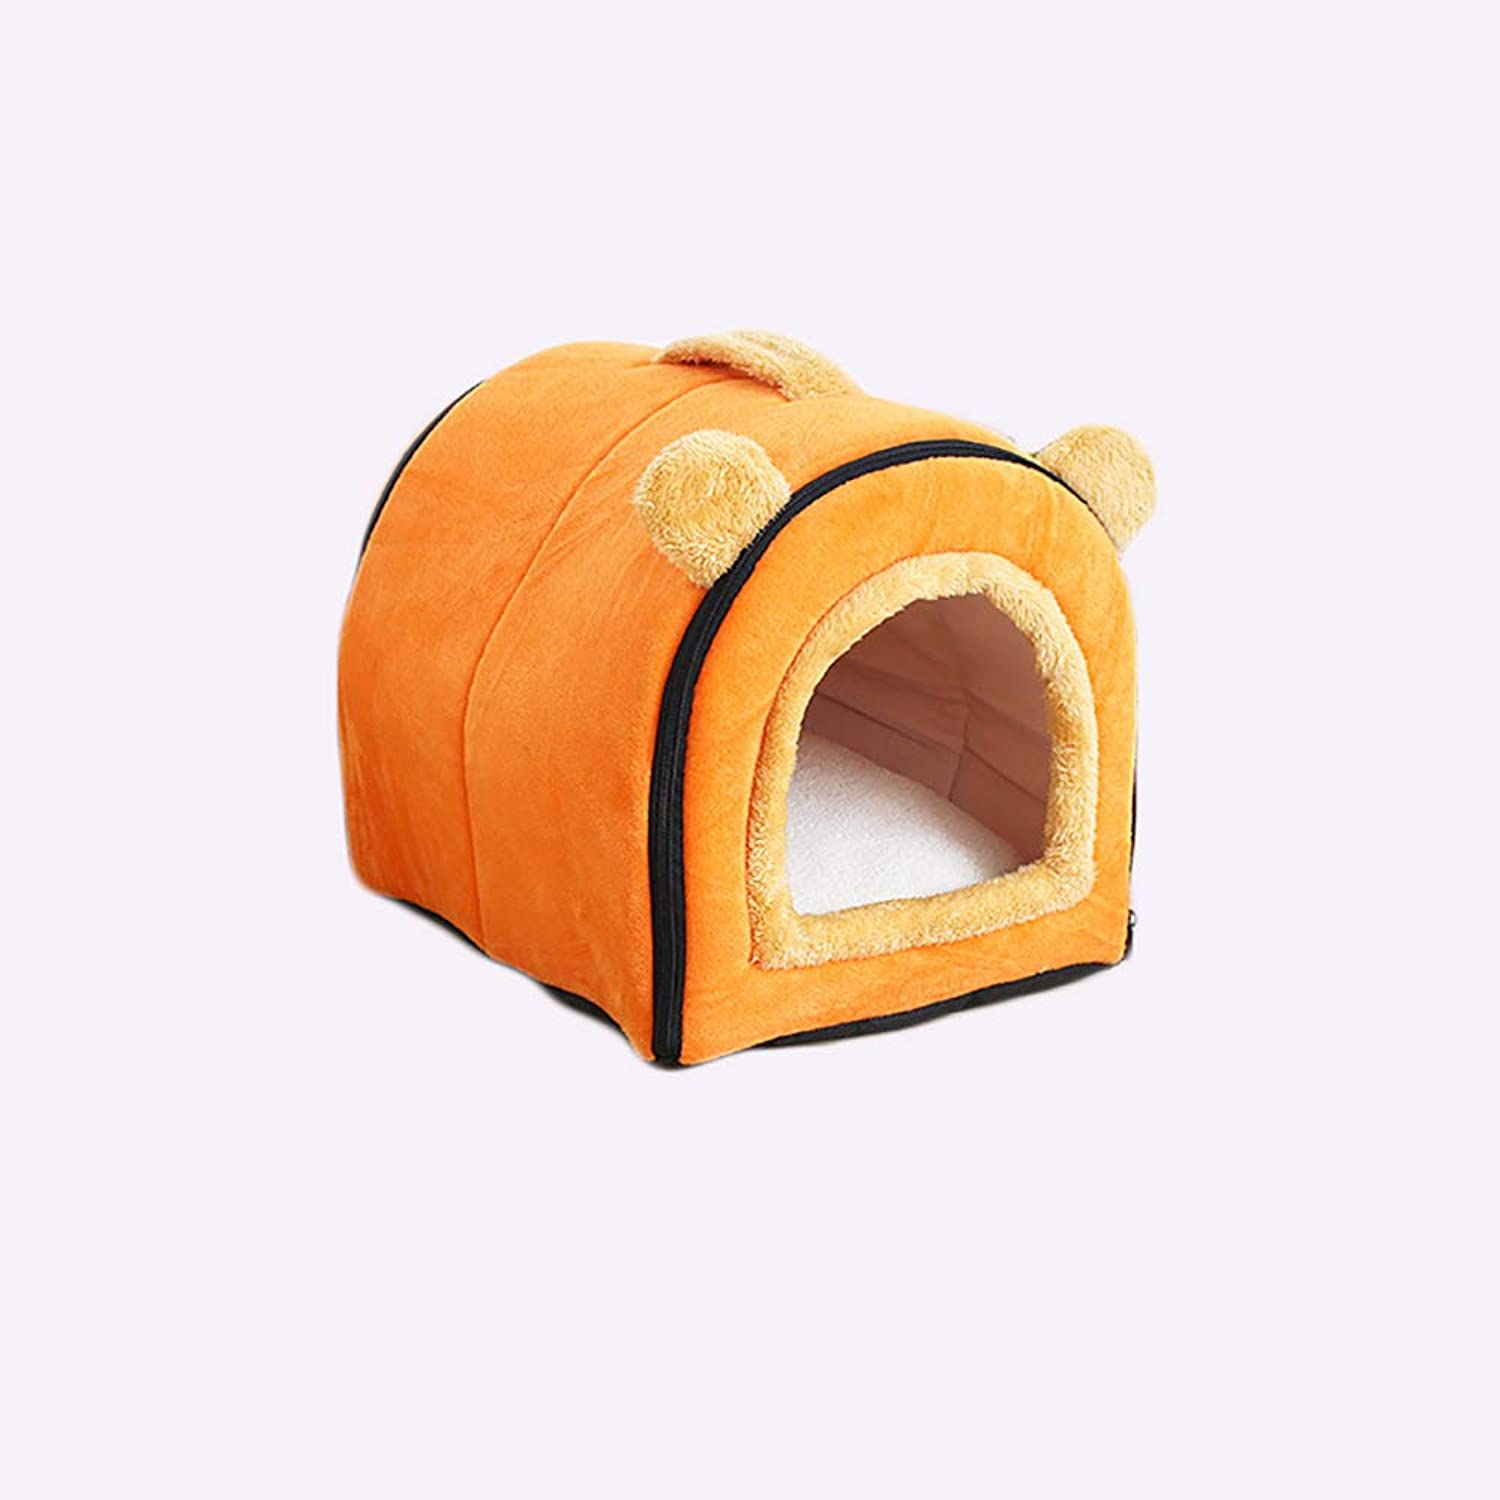 Cat and Dog Pet Mats, Pet Bed for Small Dogs,Breathable Removable and Washable Warm Cat Beds, orange (Size   S(35x29x29cm))